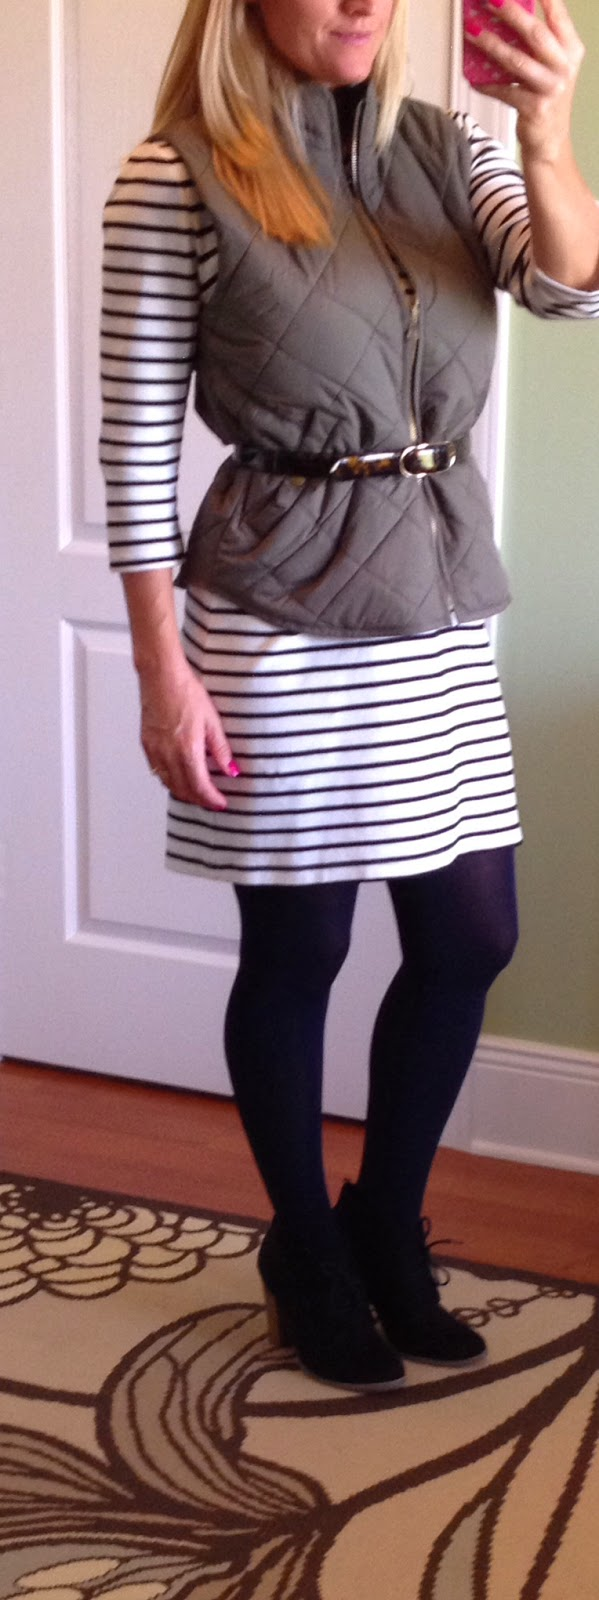 Transition Summer Dress to Fall and Winter